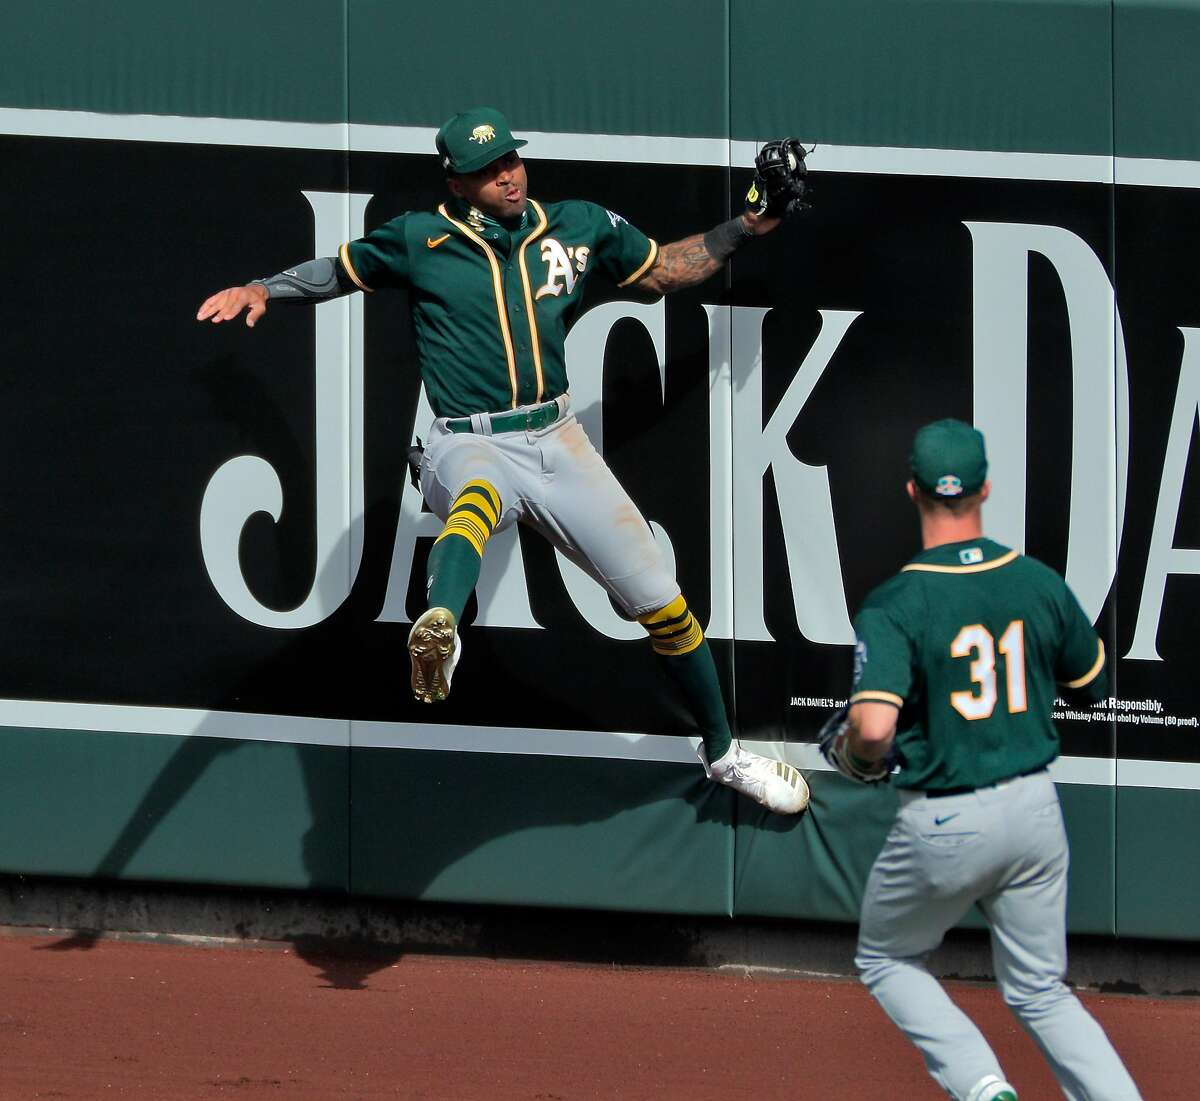 Buddy Reed (72) leaps for a ball at the centerfield wall but the impact caused the ball to come loose from his glove in the fifth ining as the Oakland Athletics played the Colorado Rockies at Salt River Fields at Talking Stick in Scottsdale, Ariz., on Wednesday, March 3, 2021.